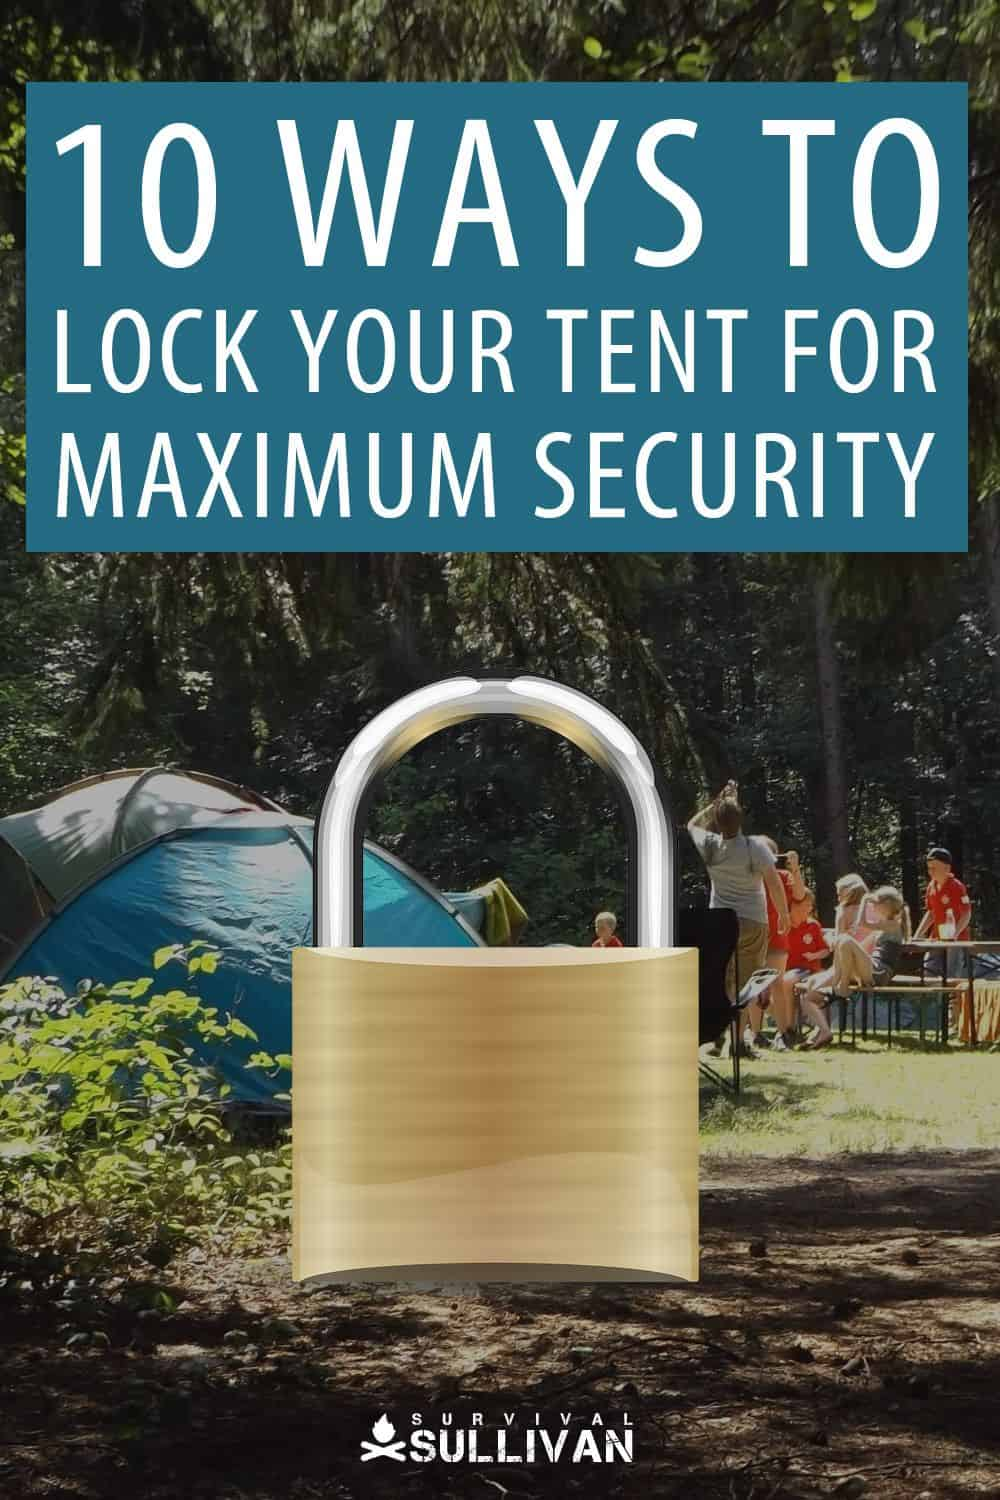 locking your tent pinterest image